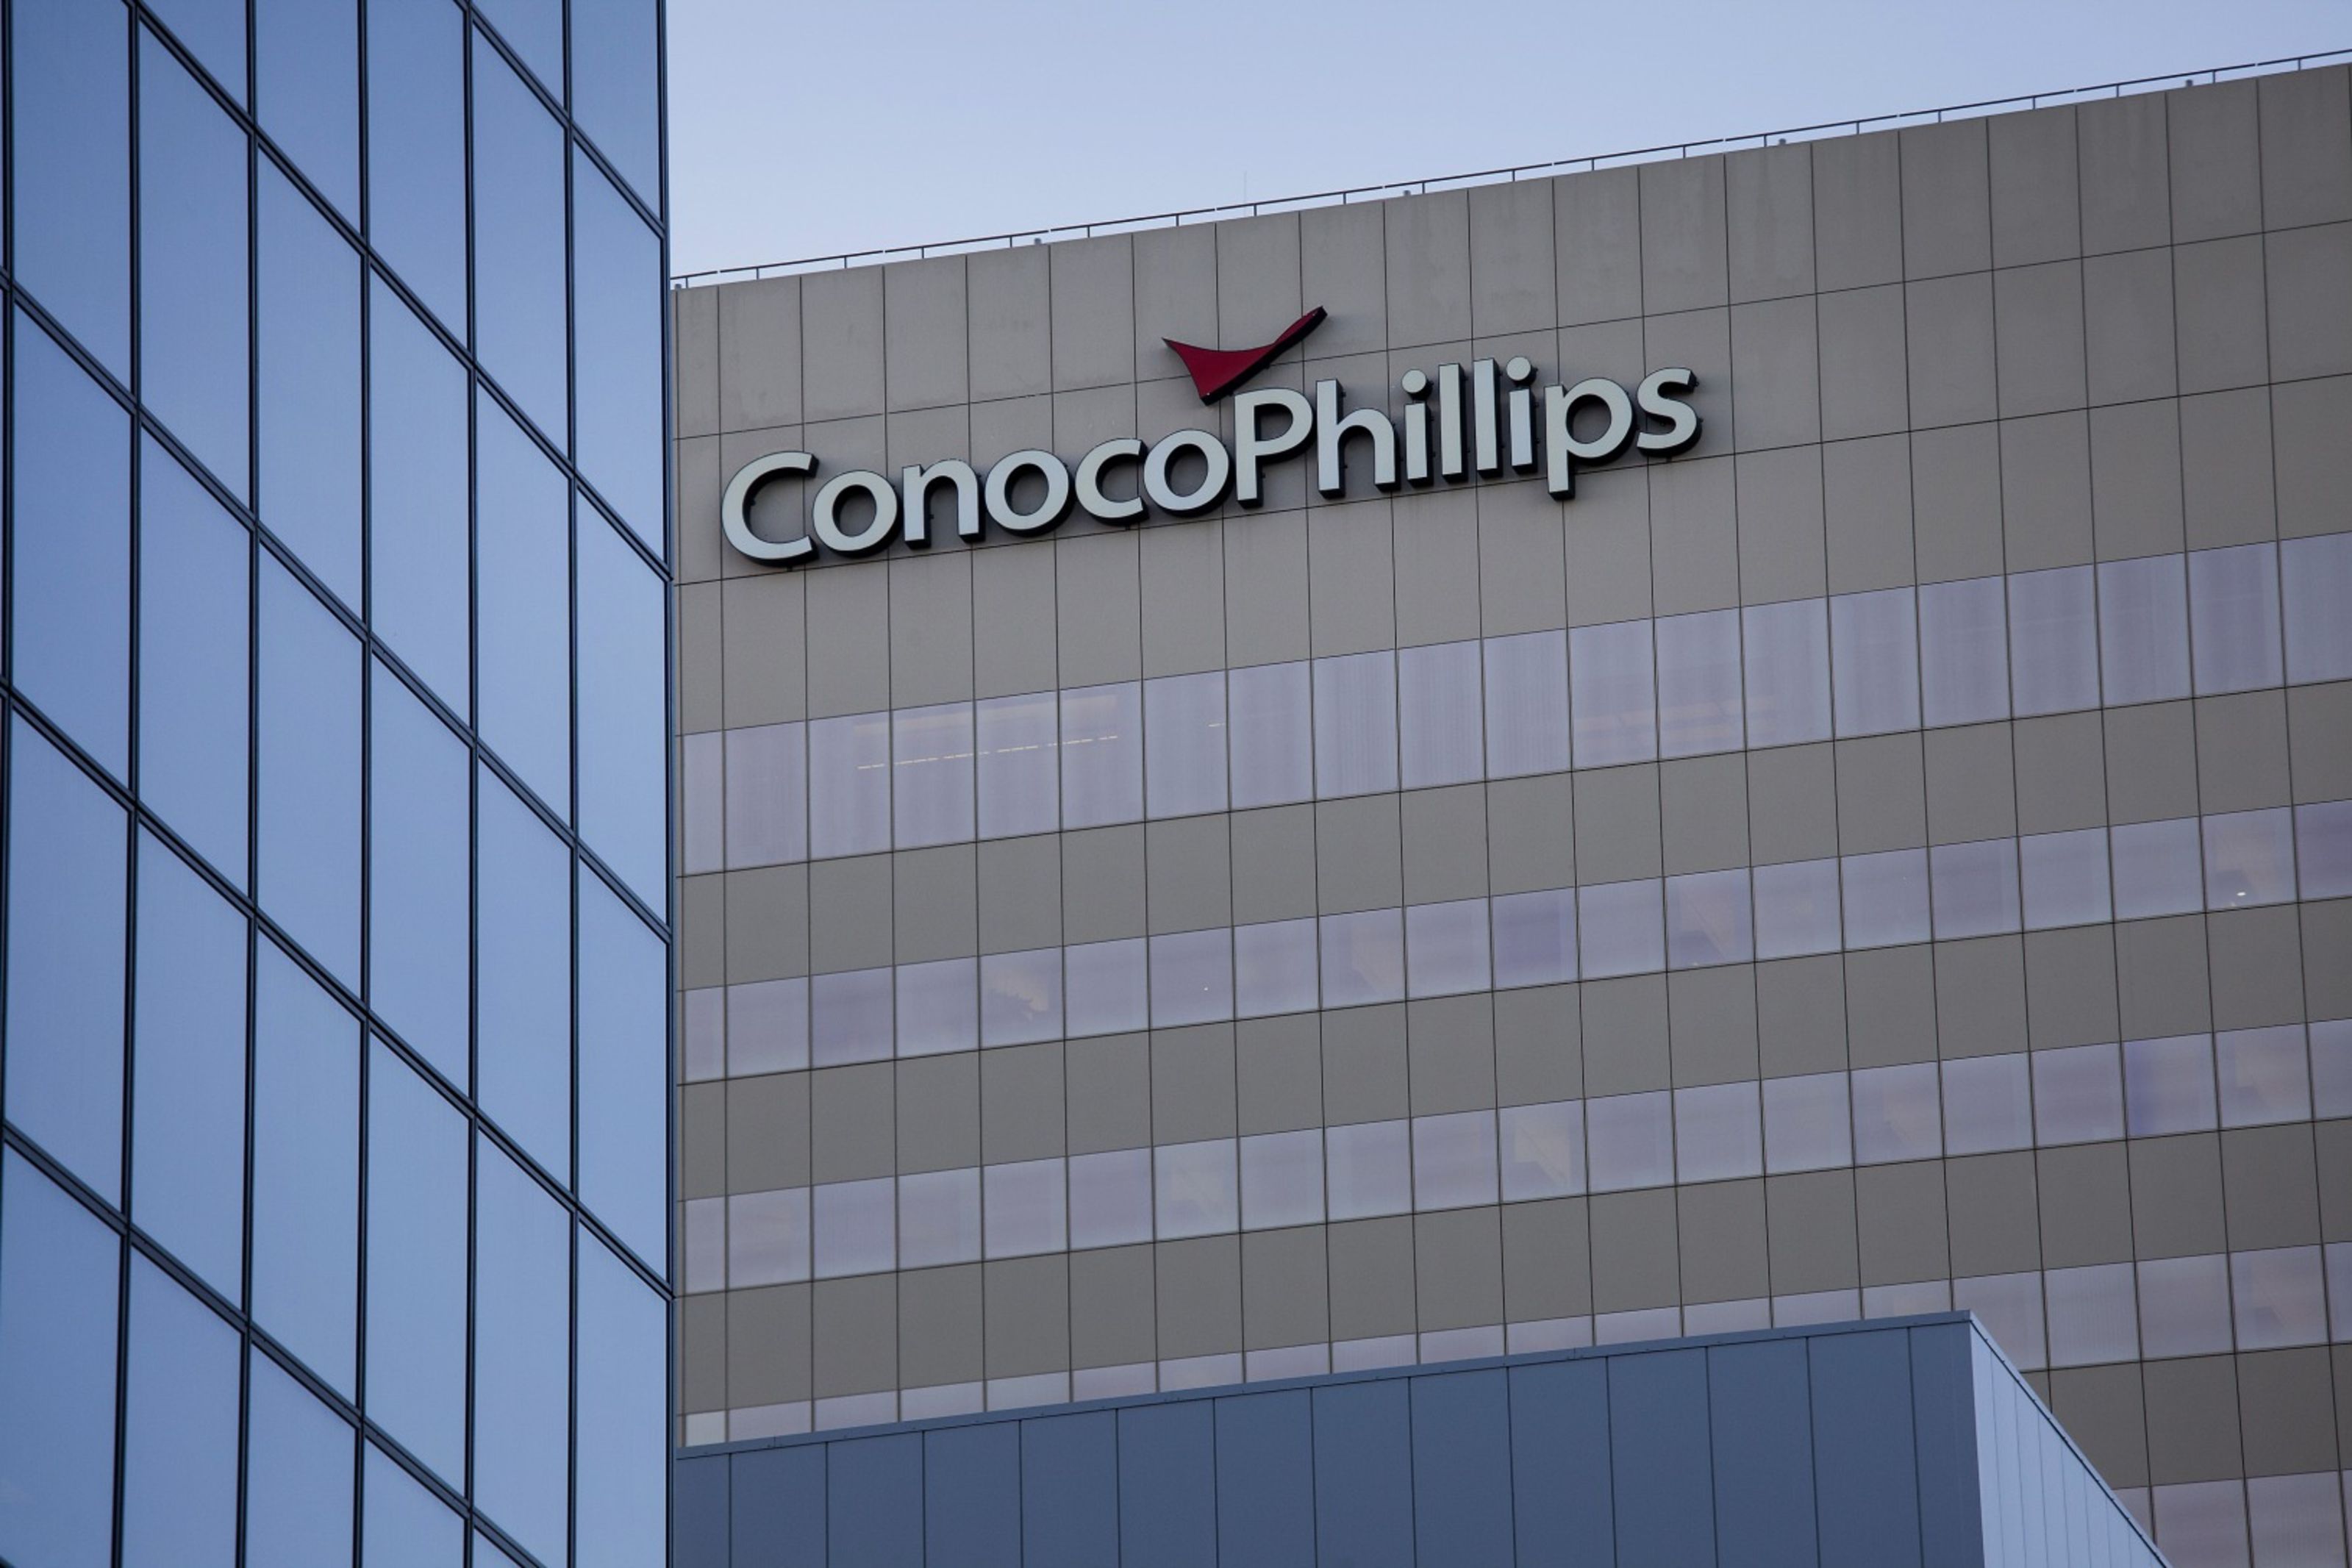 ConocoPhillips cut debt